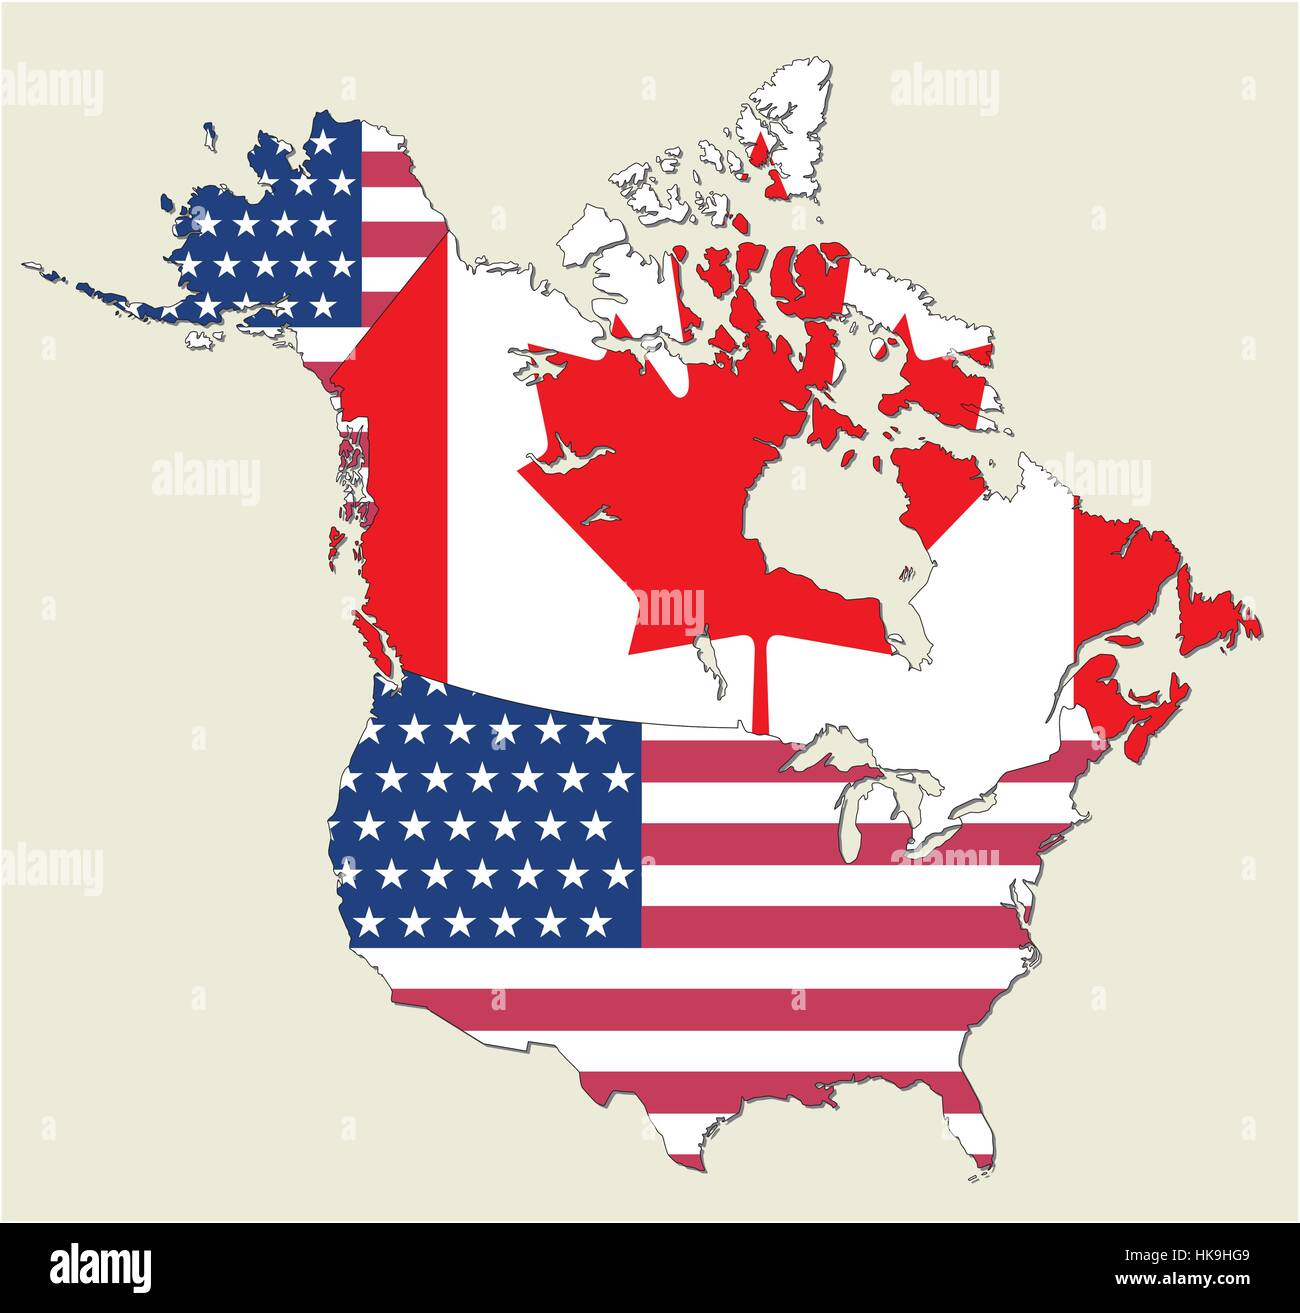 Map of the states of canada and usa flag as Represented Stock Vector ...